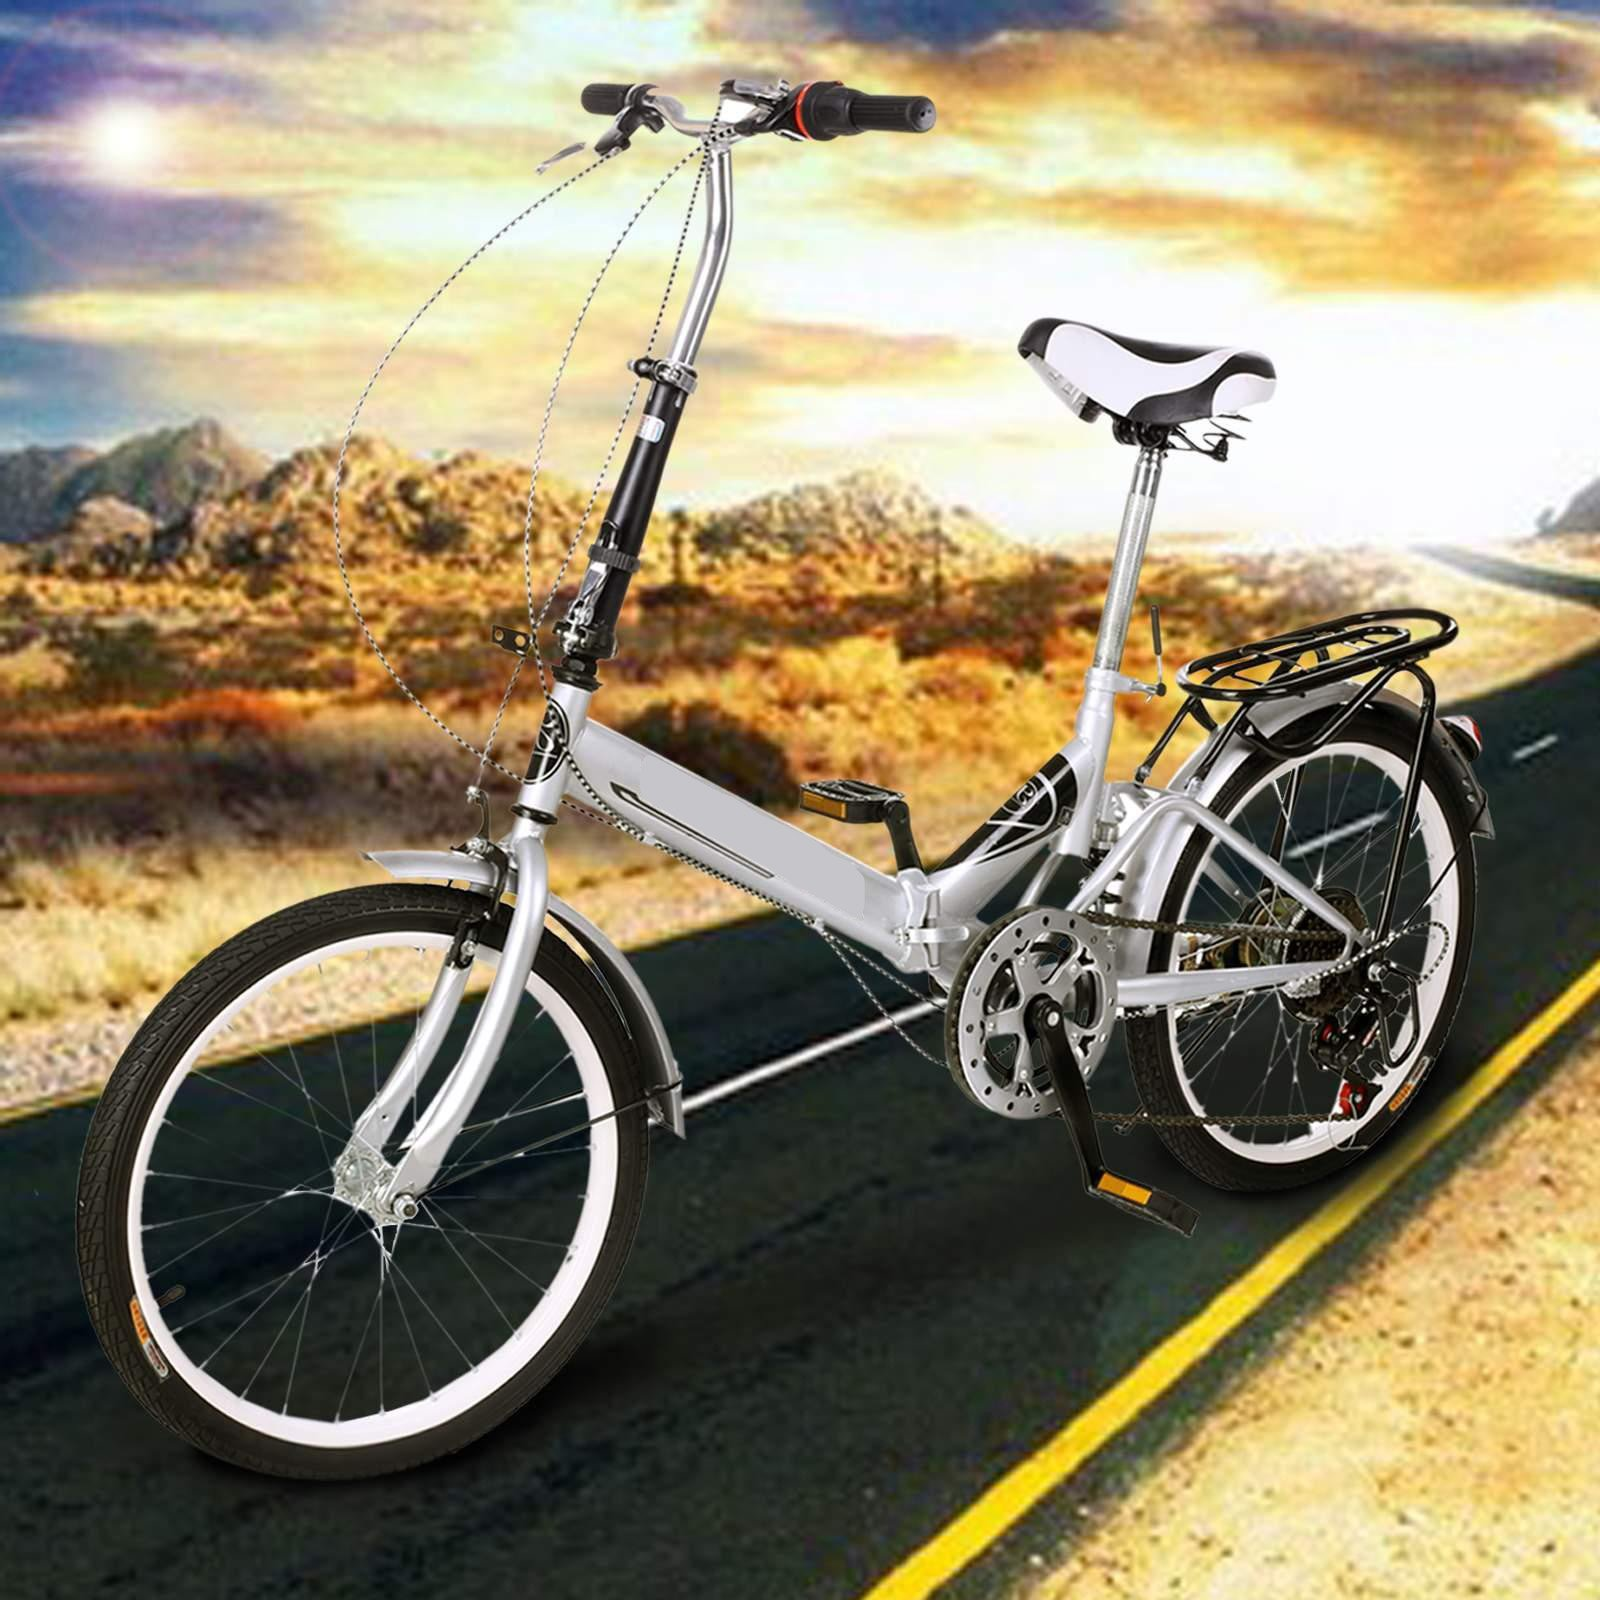 Utheing 20inch Wheel Folding Bike 6 Speed Mountain Bicycle Cycling Steel Frame Double Disk, Silver by Utheing (Image #7)